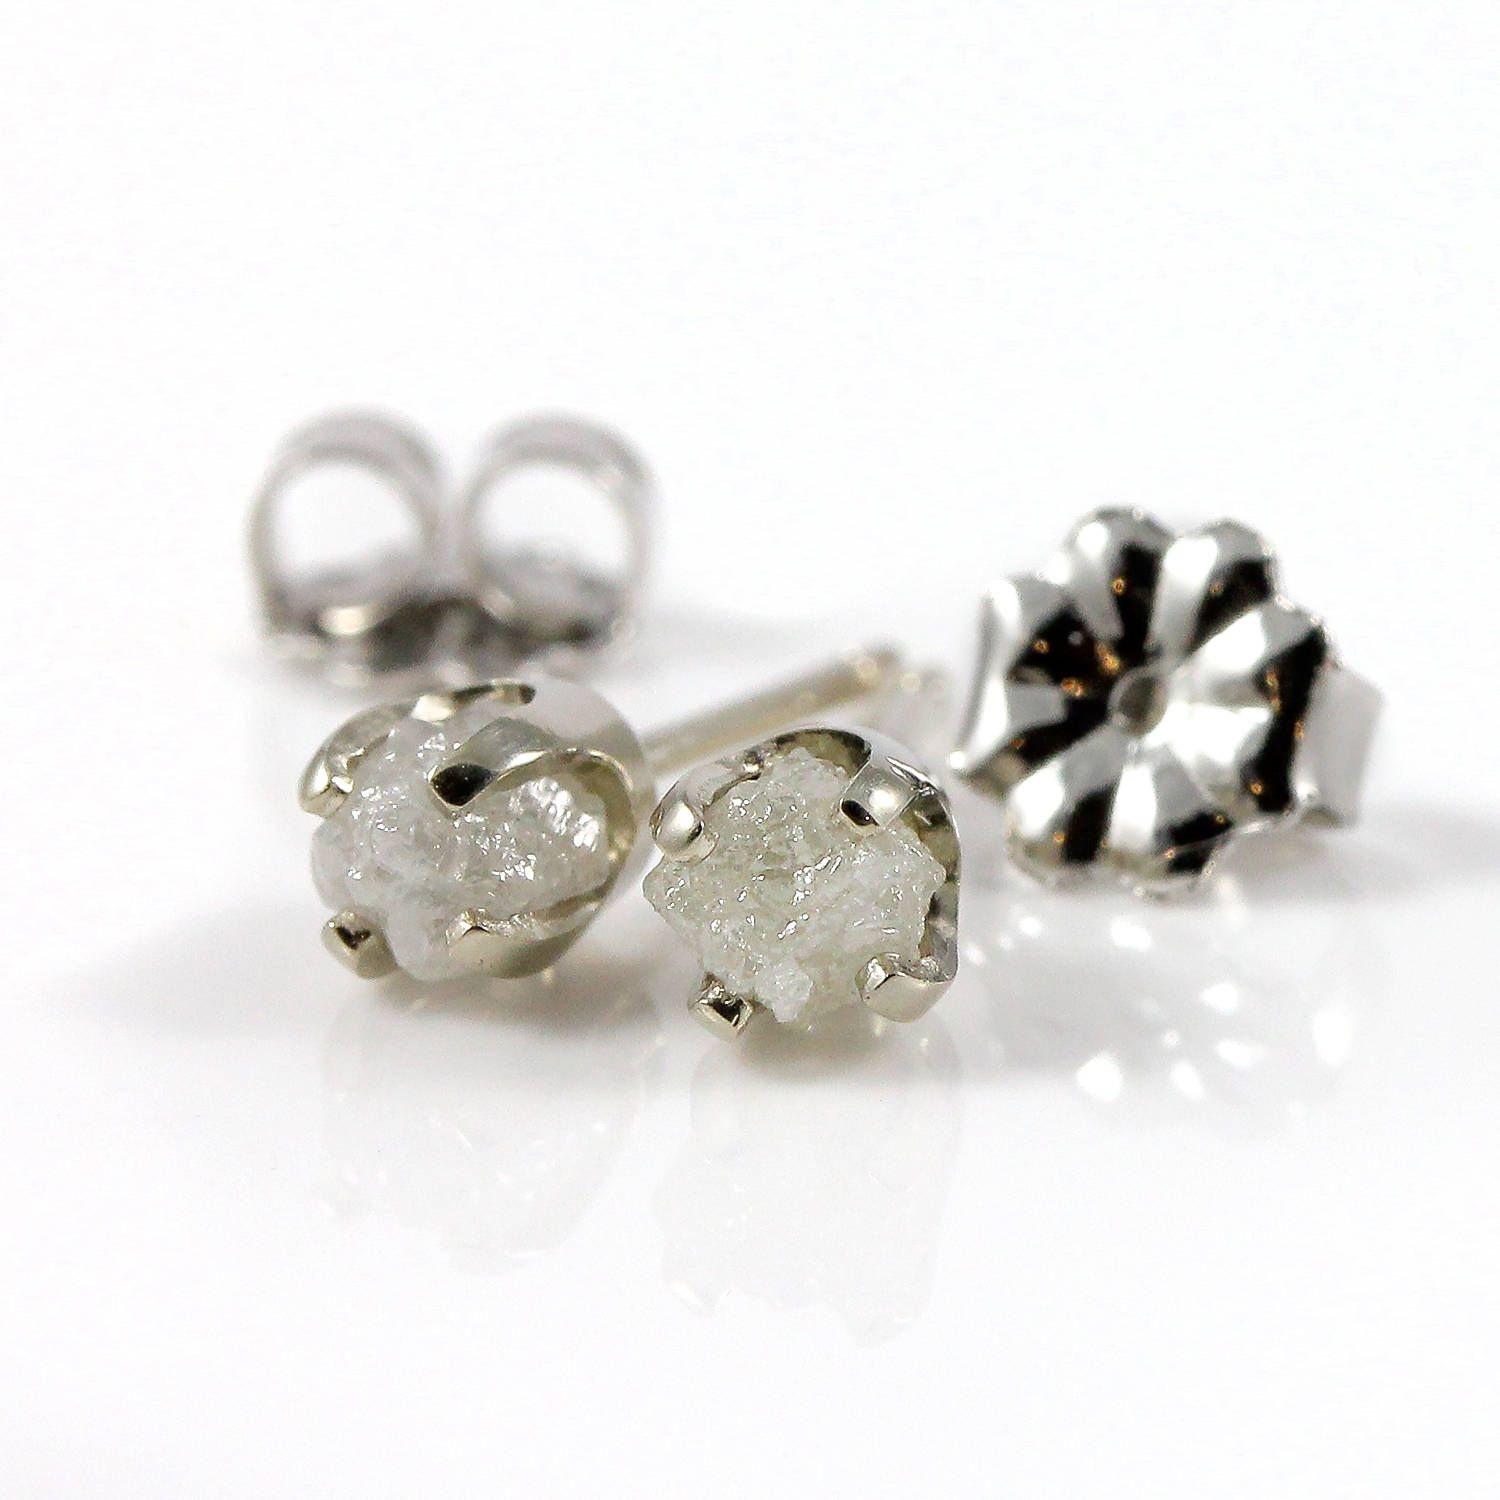 7177f7fee Rough Diamonds in 14K White Gold Earrings - Natural Unfinished Raw Stones -  White Diamond Studs - Gold Post Earrings